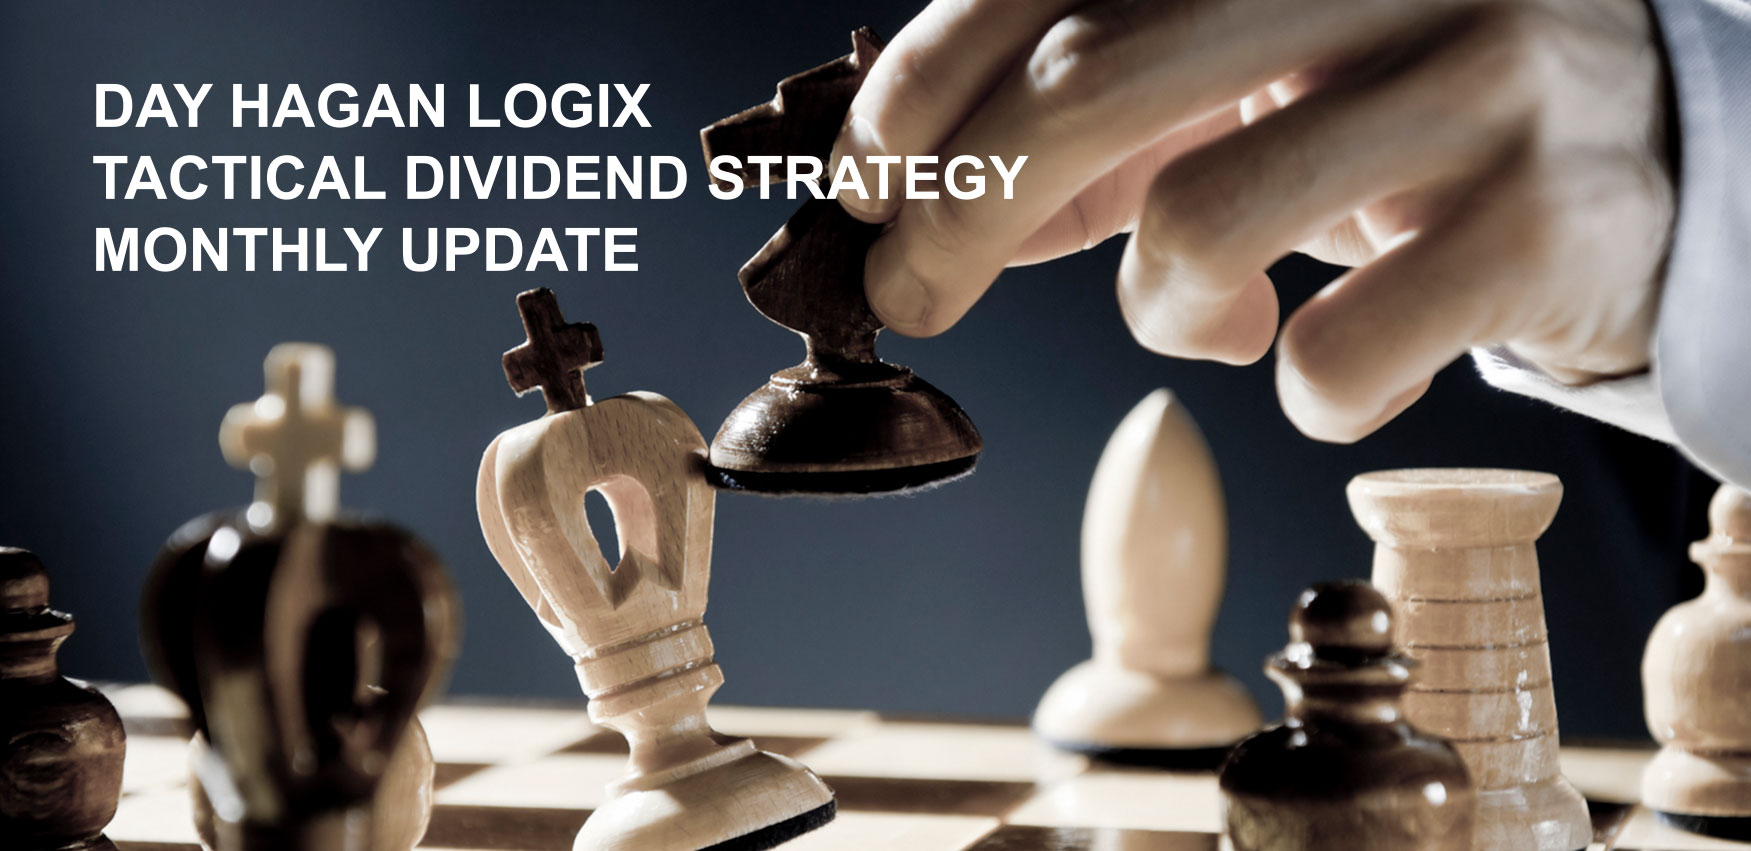 day-hagan-logix-tactical-dividend-strategy-update.jpg